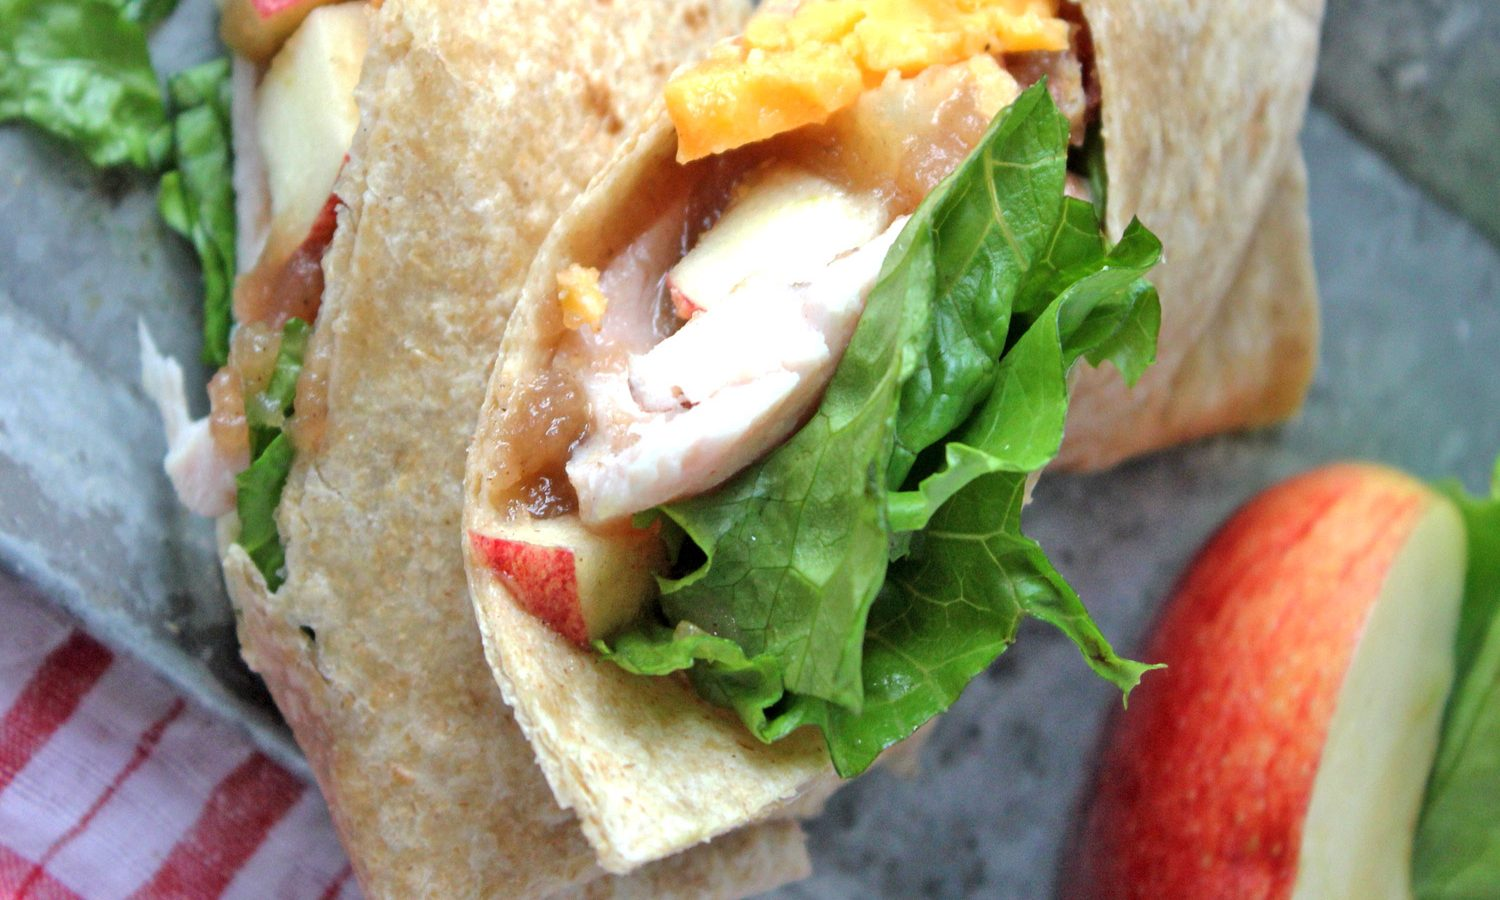 Turkey wrap recipe featuring fresh apples, apple butter and cheddar cheese.